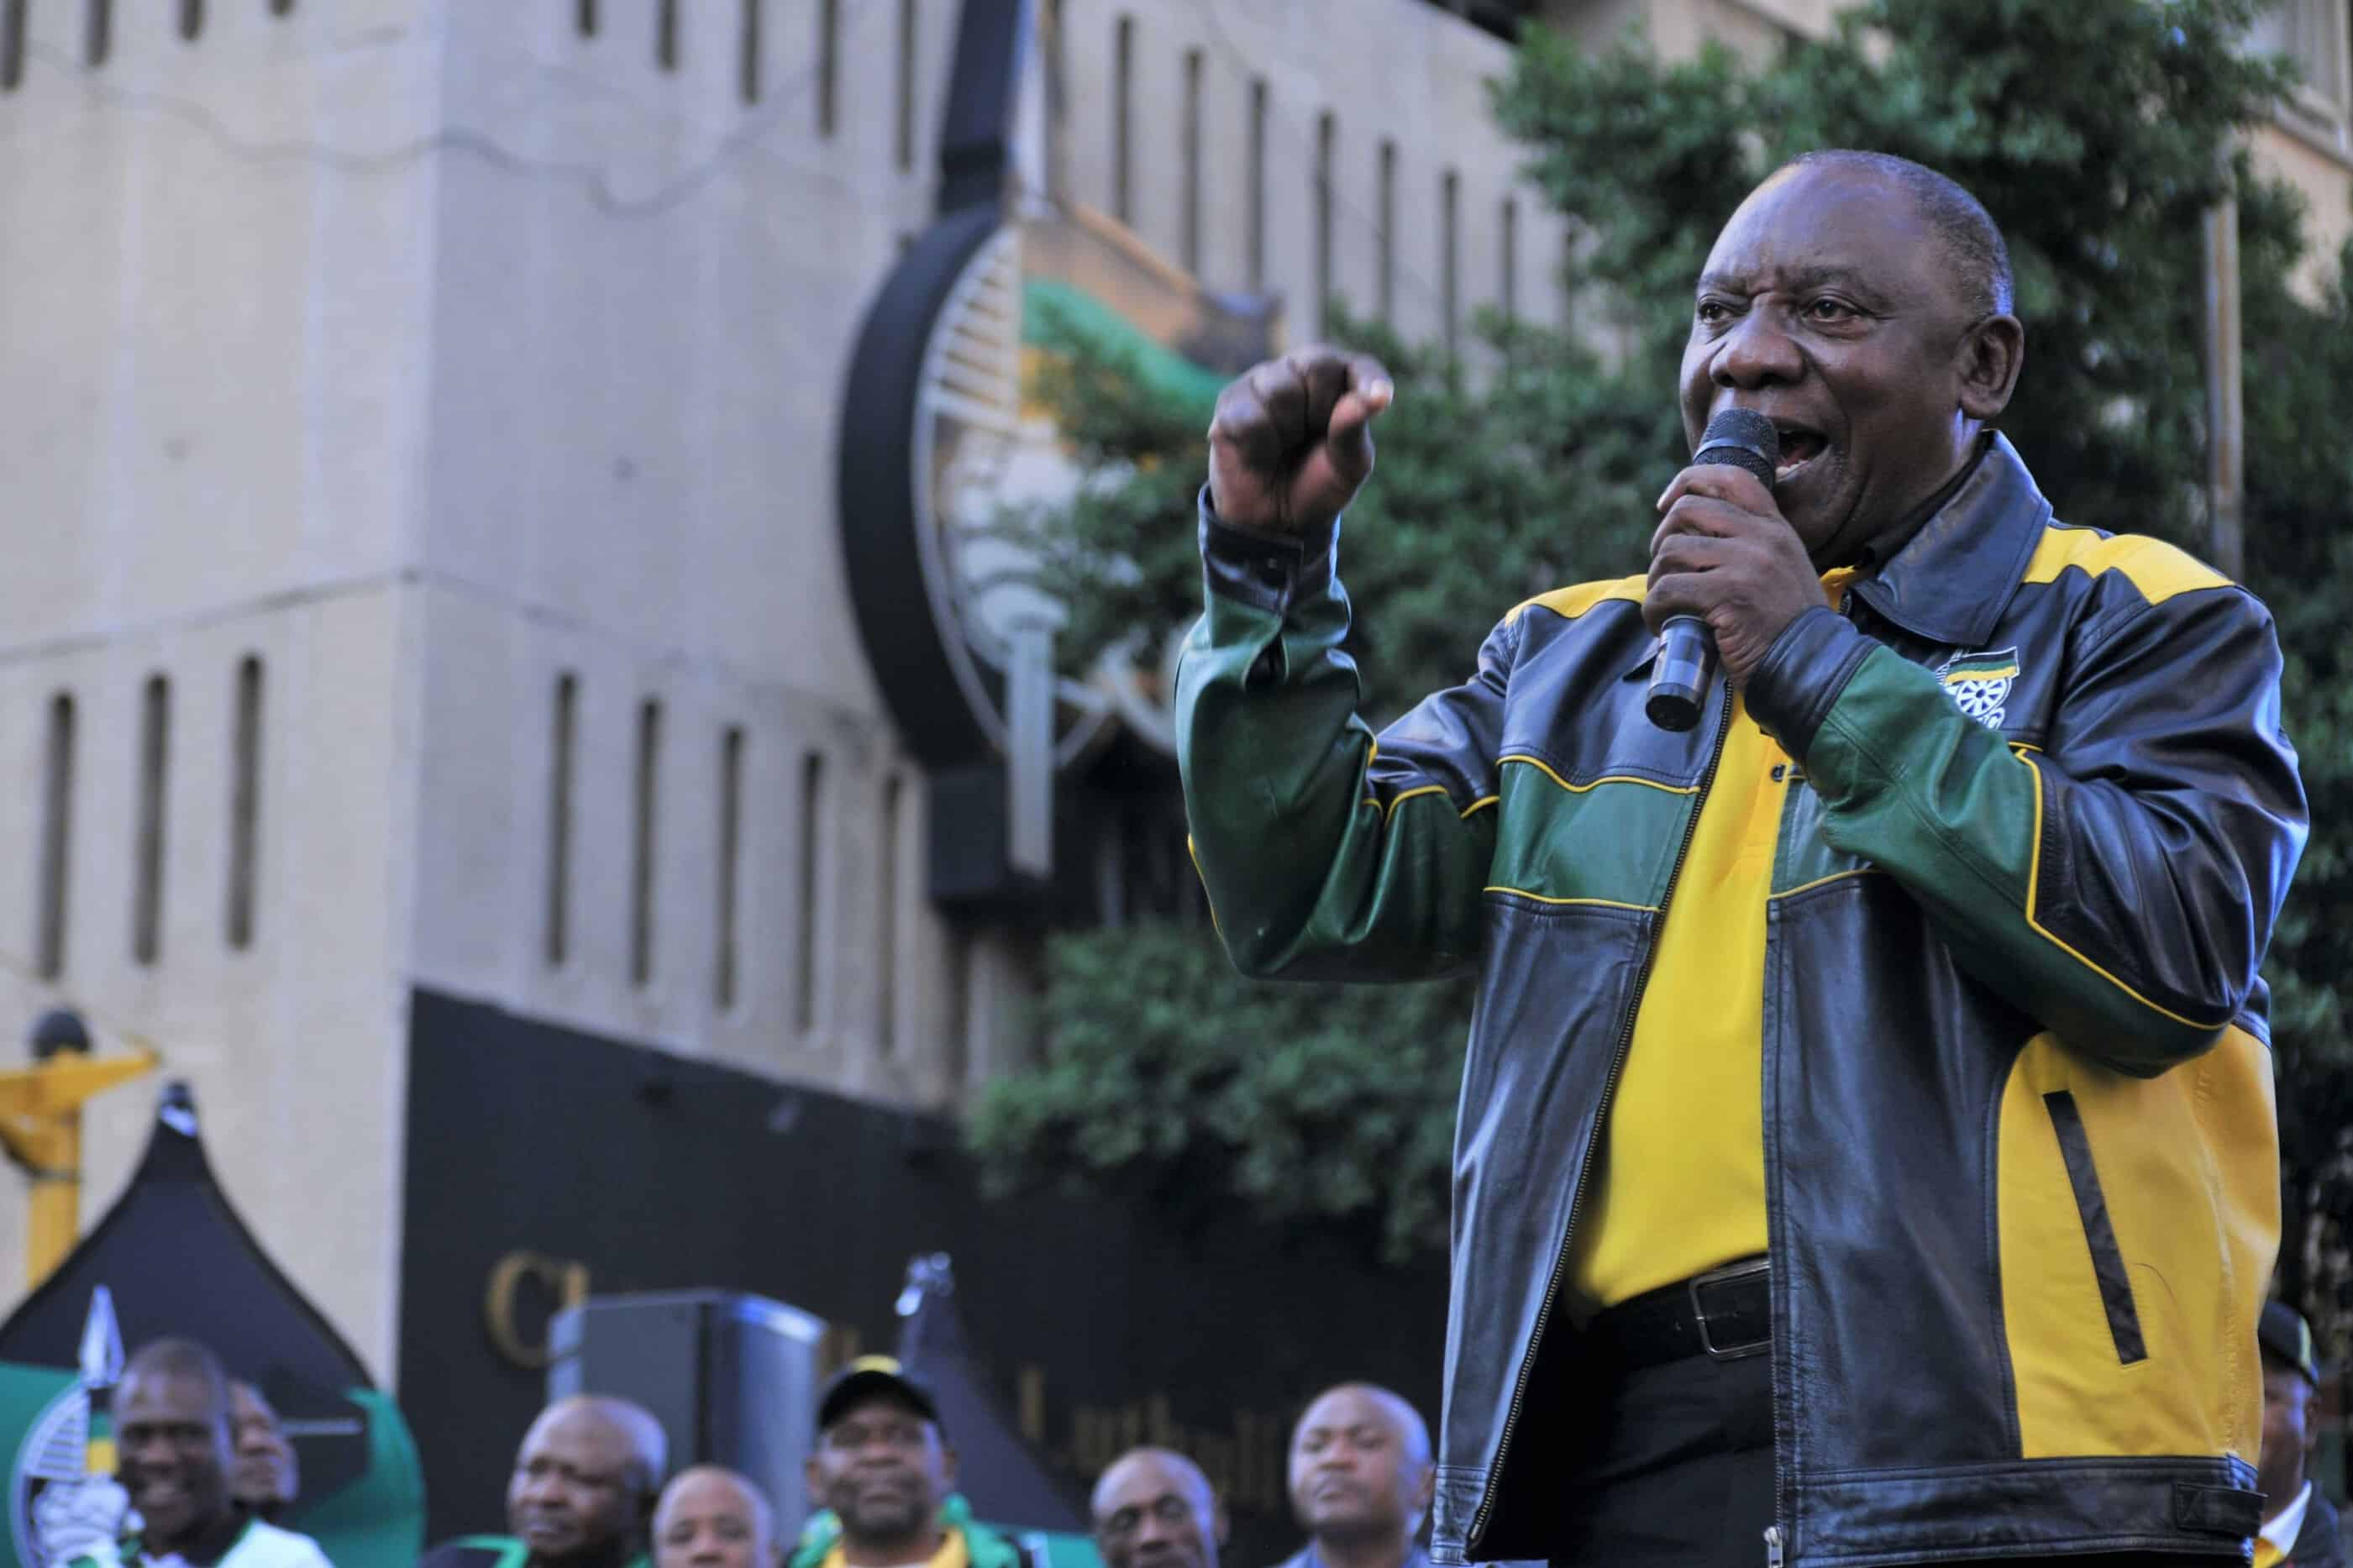 12 May 2019: President Cyril Ramaphosa addresses ANC supporters outside Luthuli House during an election victory celebration. Ramaphosa admitted that the campaign was difficult, and thanked supporters for having confidence in the party. (Photograph by Gallo Images/Laird Forbes)